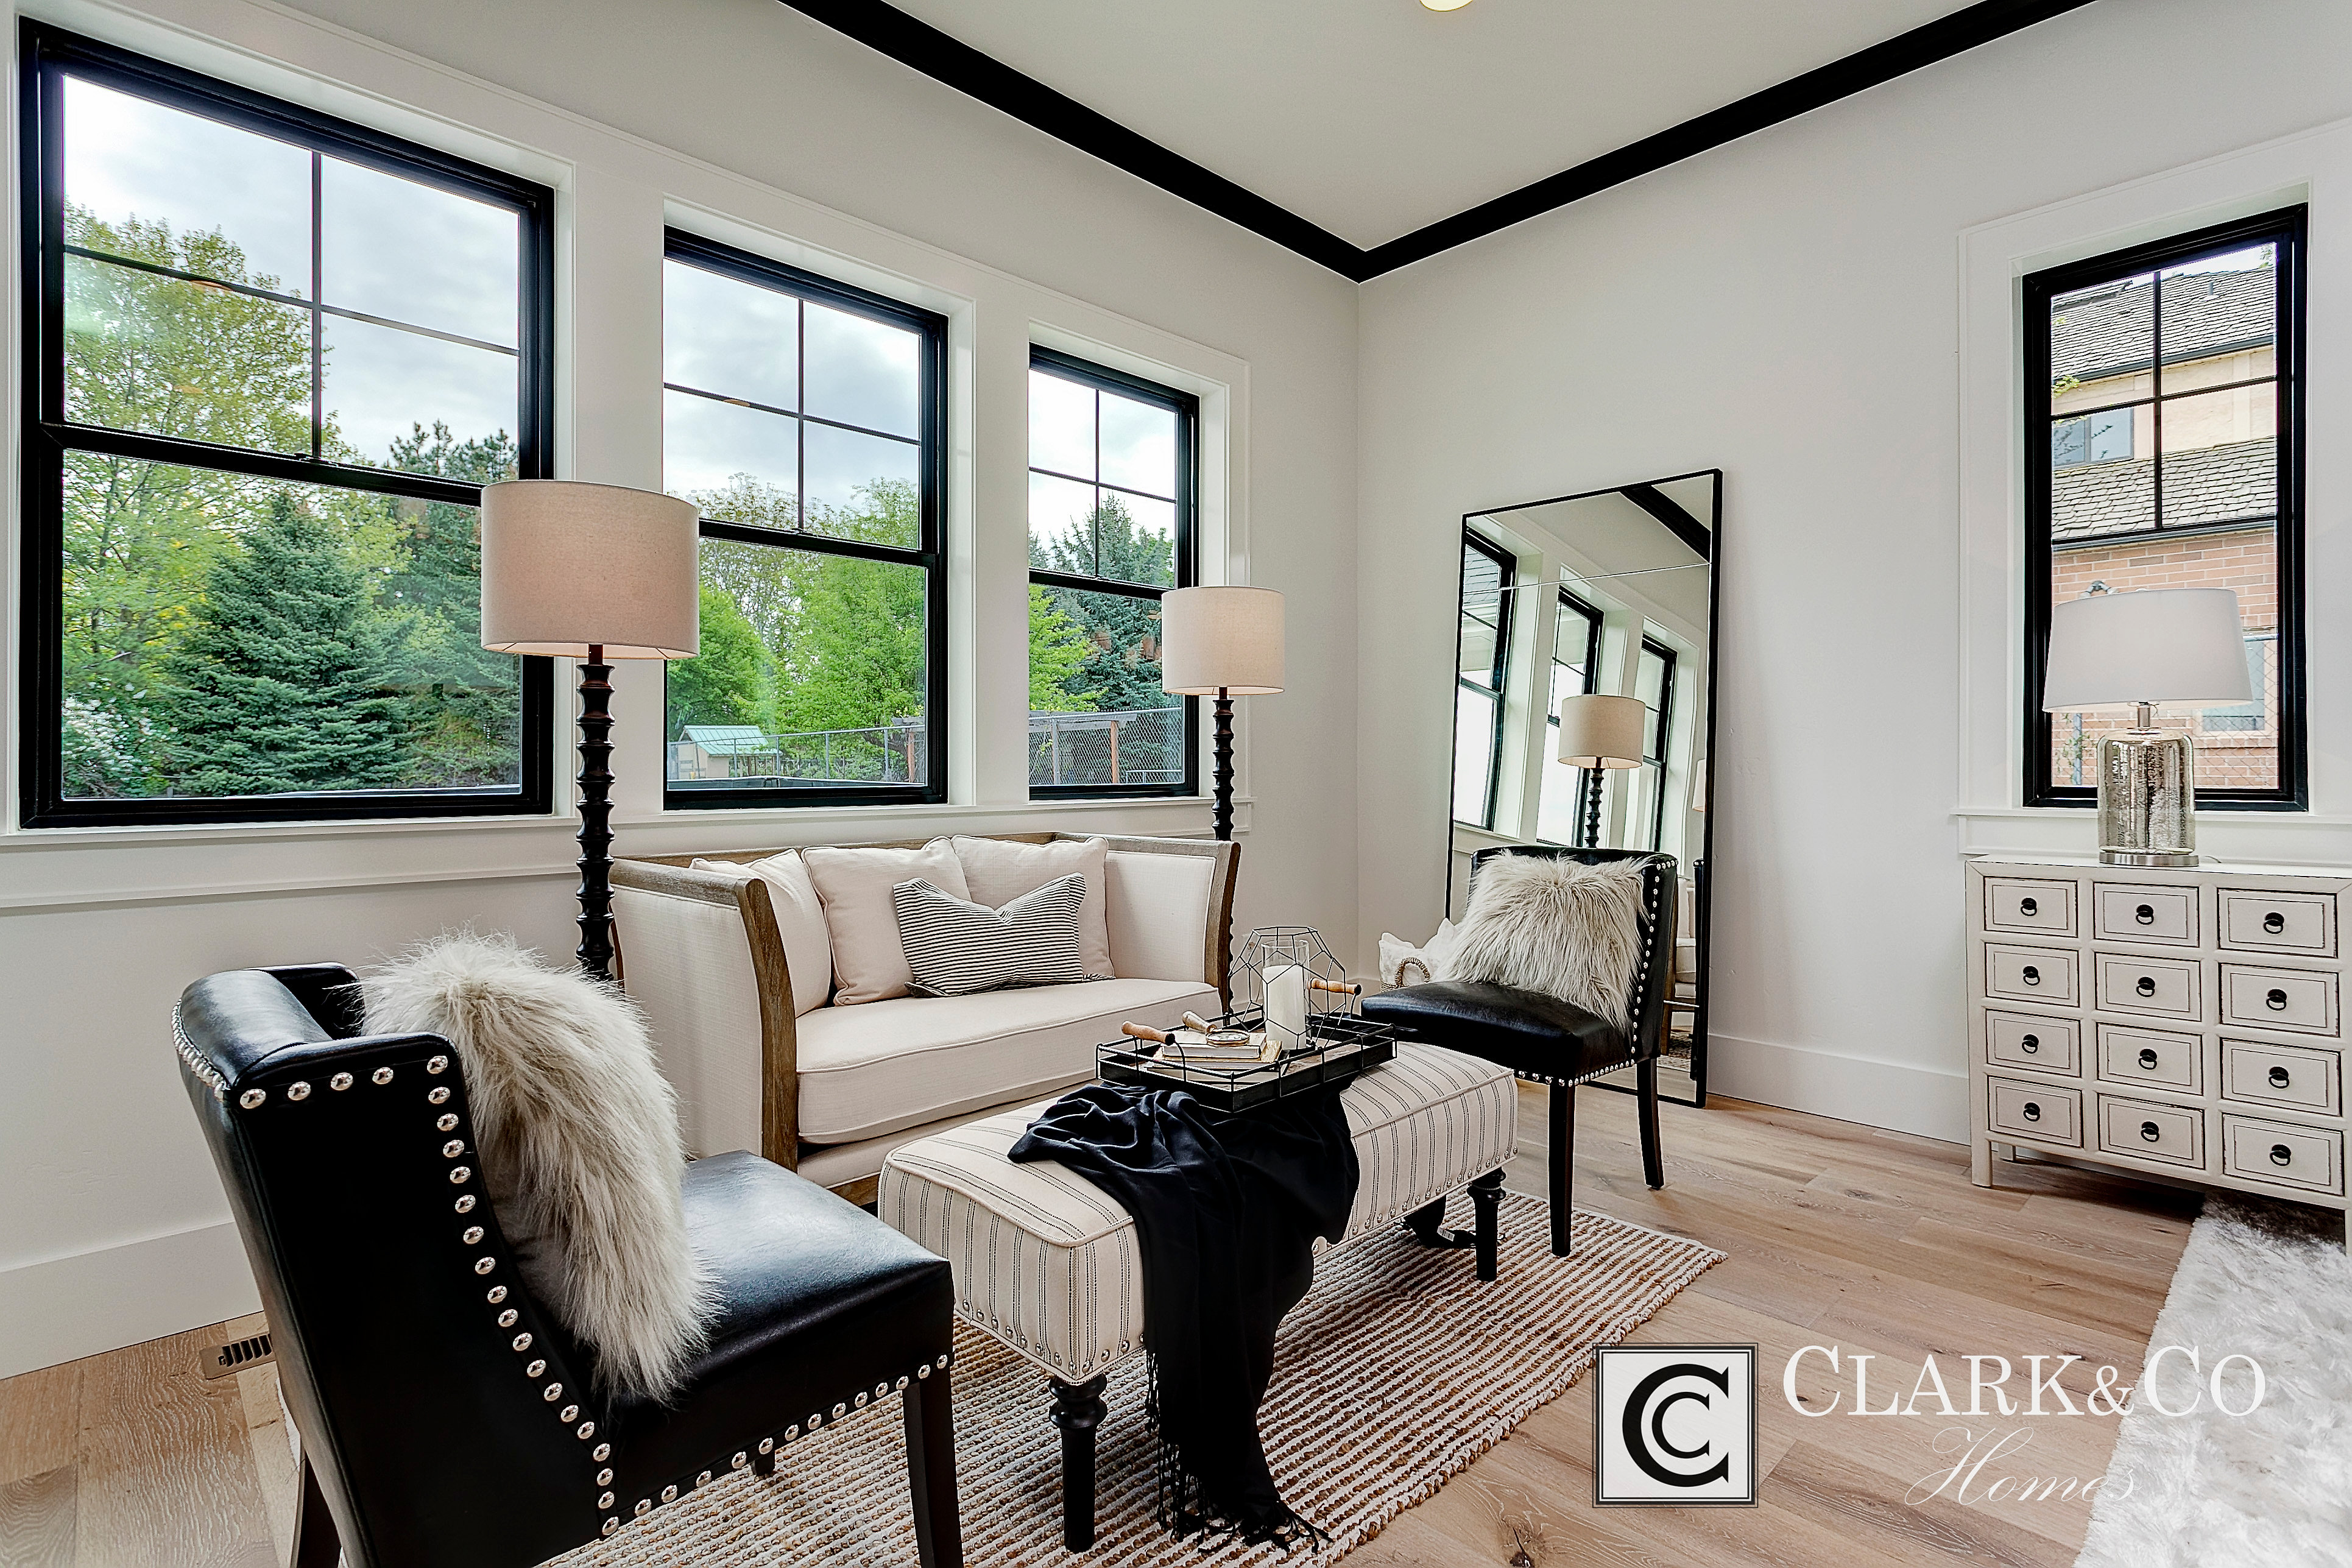 Black windows for homes - Clark And Co Homes